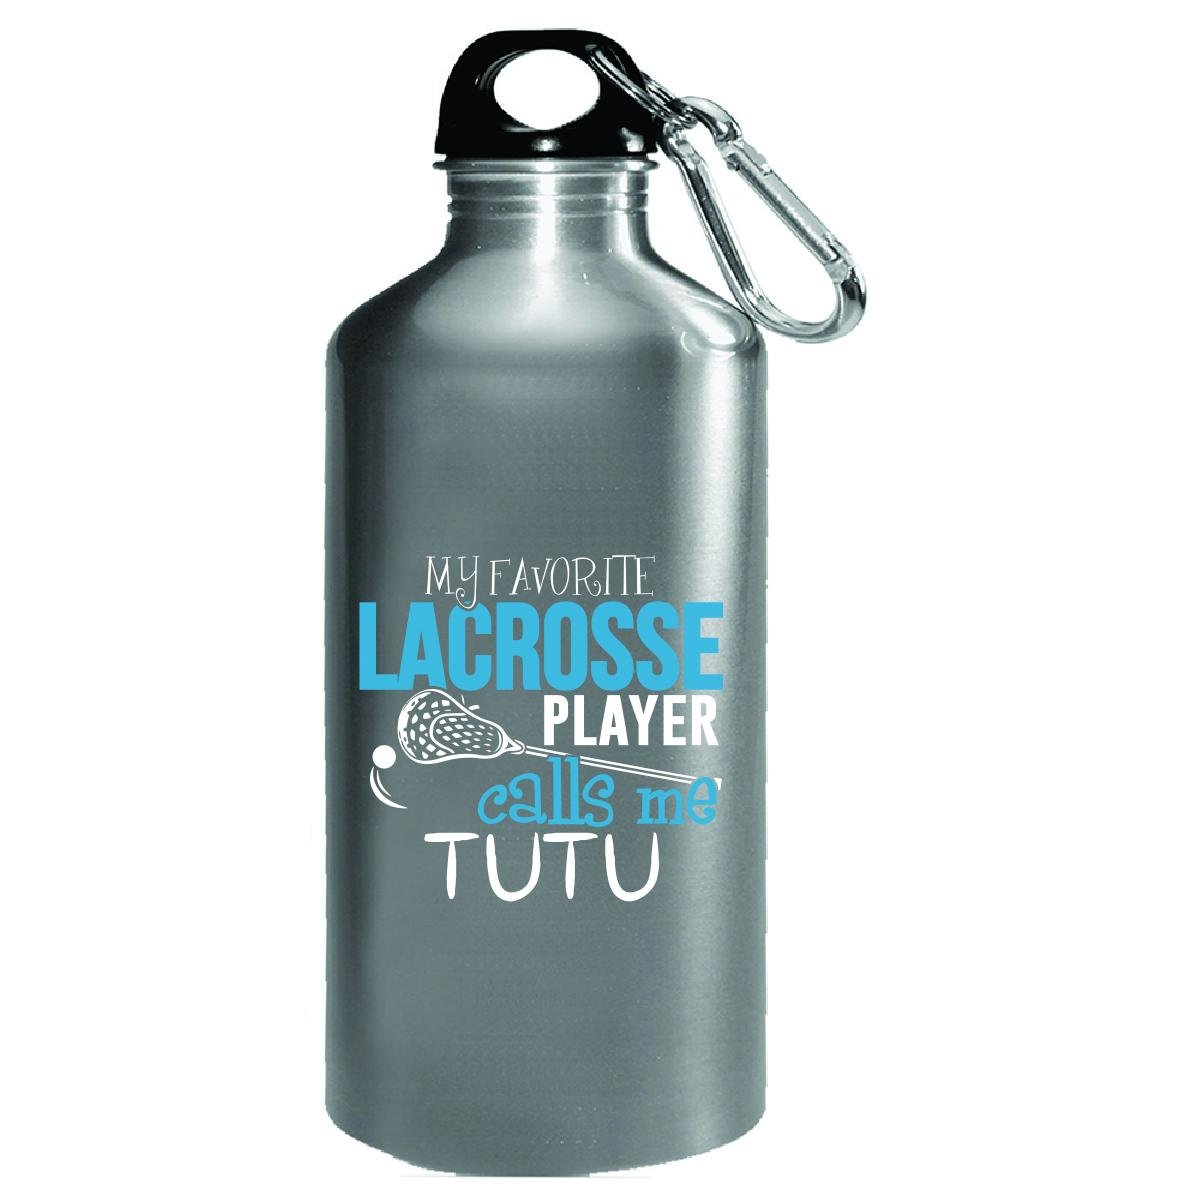 My Favorite Lacrosse Player Calls Me Tutu - Water Bottle